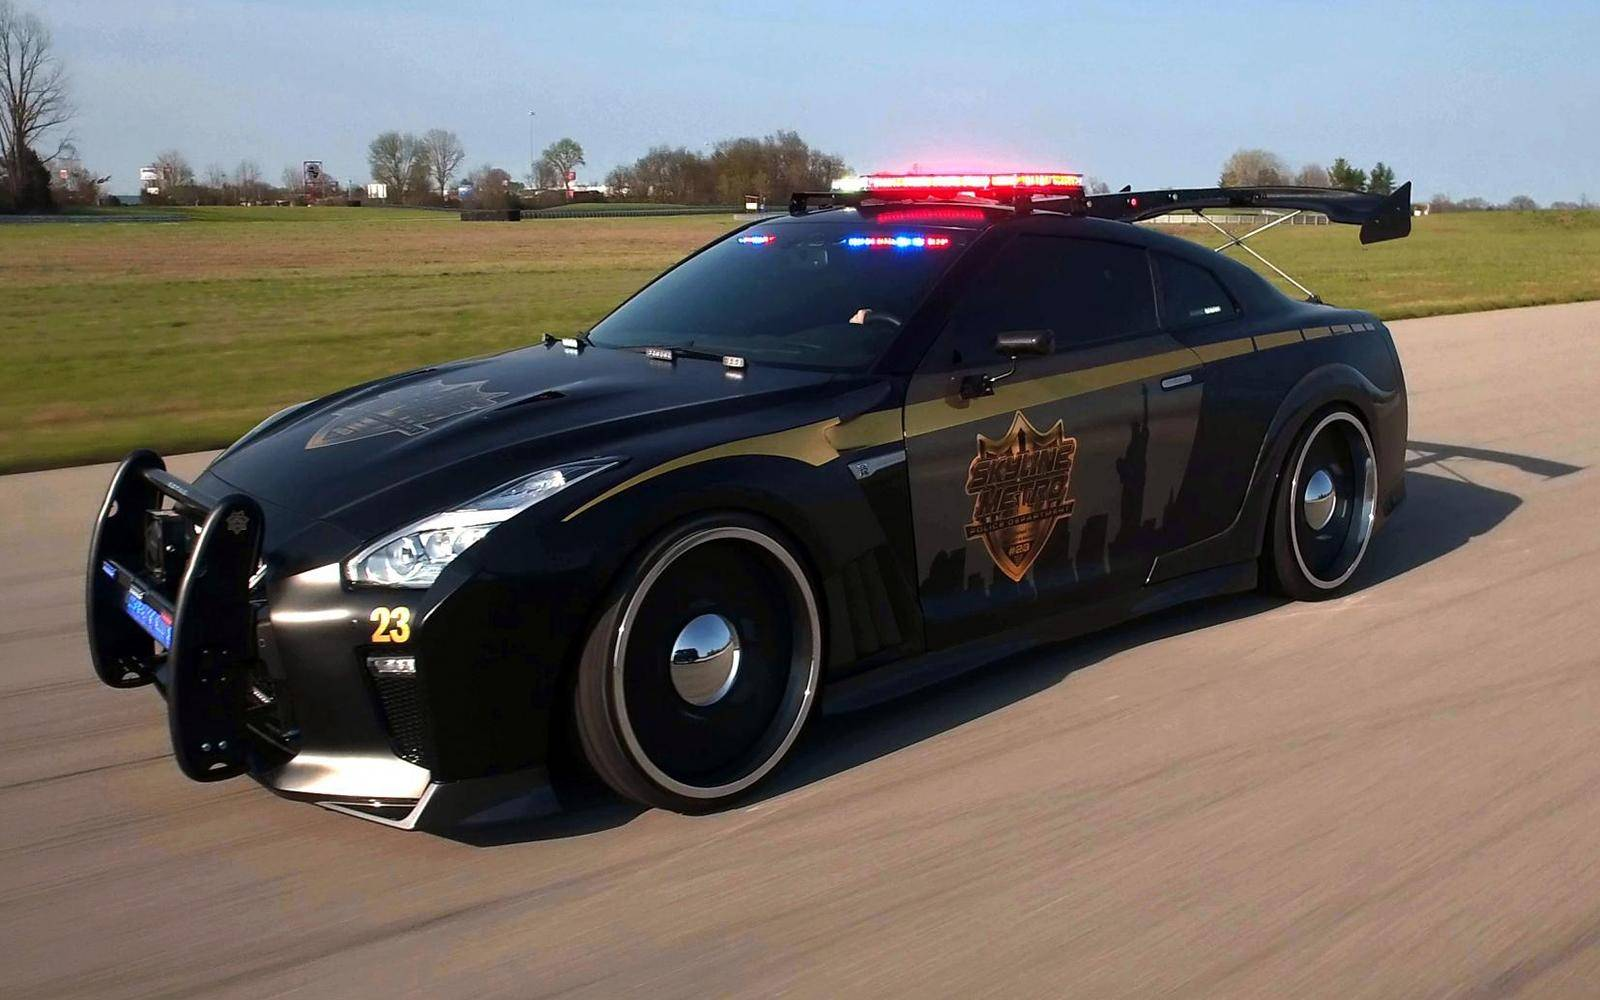 Nissan Copzilla: 'Anything you say can be held against you'